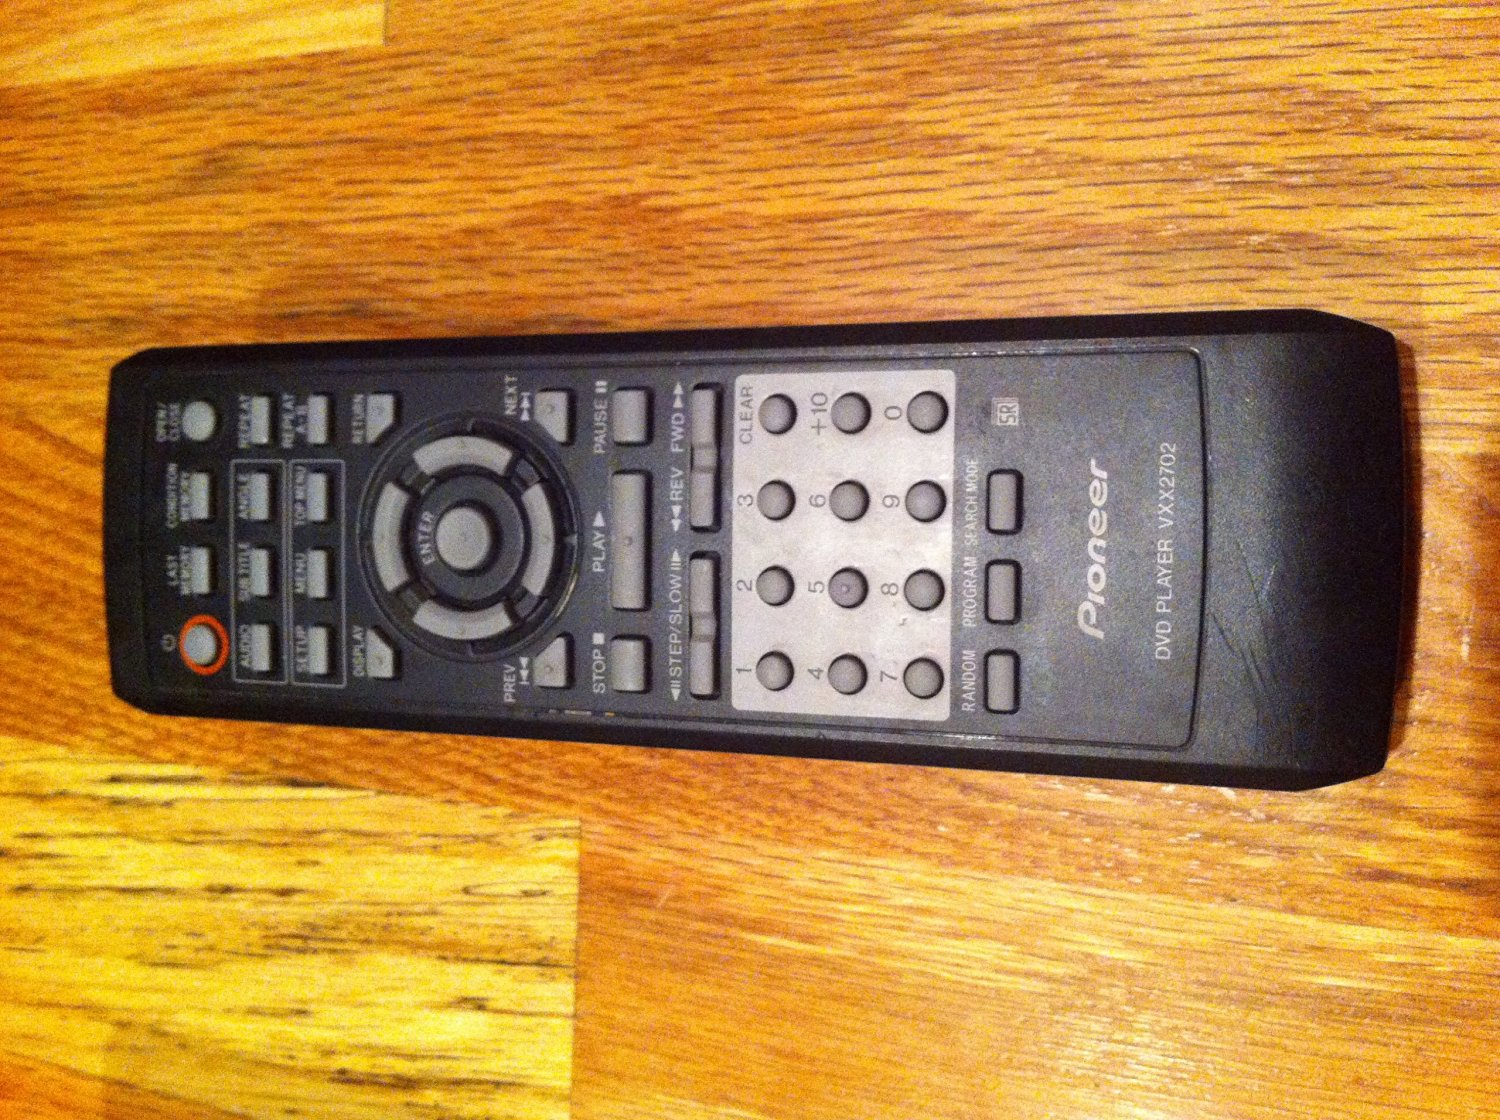 Cheap Pioneer Dvd Remote Control Find Avh P4000dvd Manual Get Quotations Vxx2702 Player For Models Dv 333 340